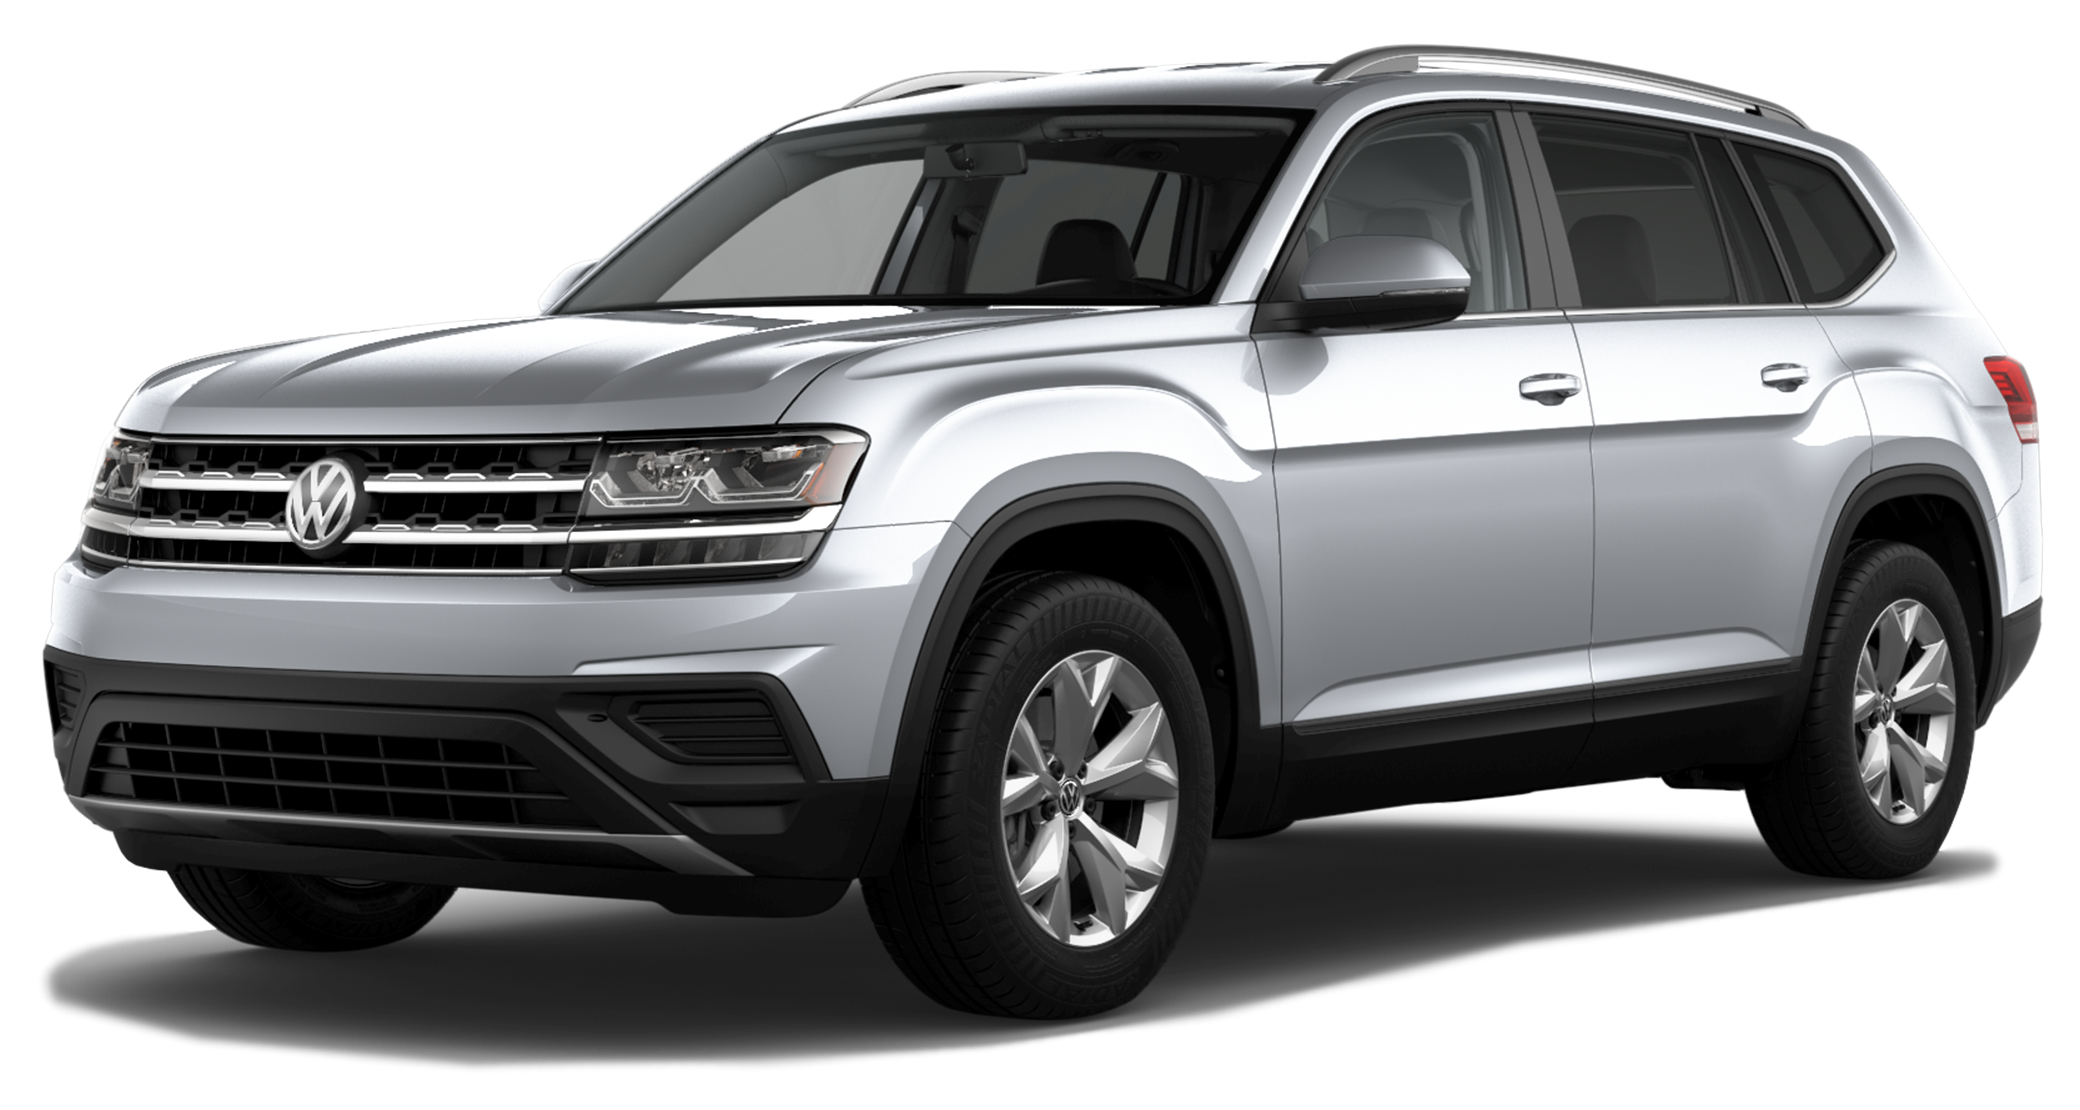 Review & Compare Volkswagen Atlas at Larry H. Miller Volkswagen Avondale